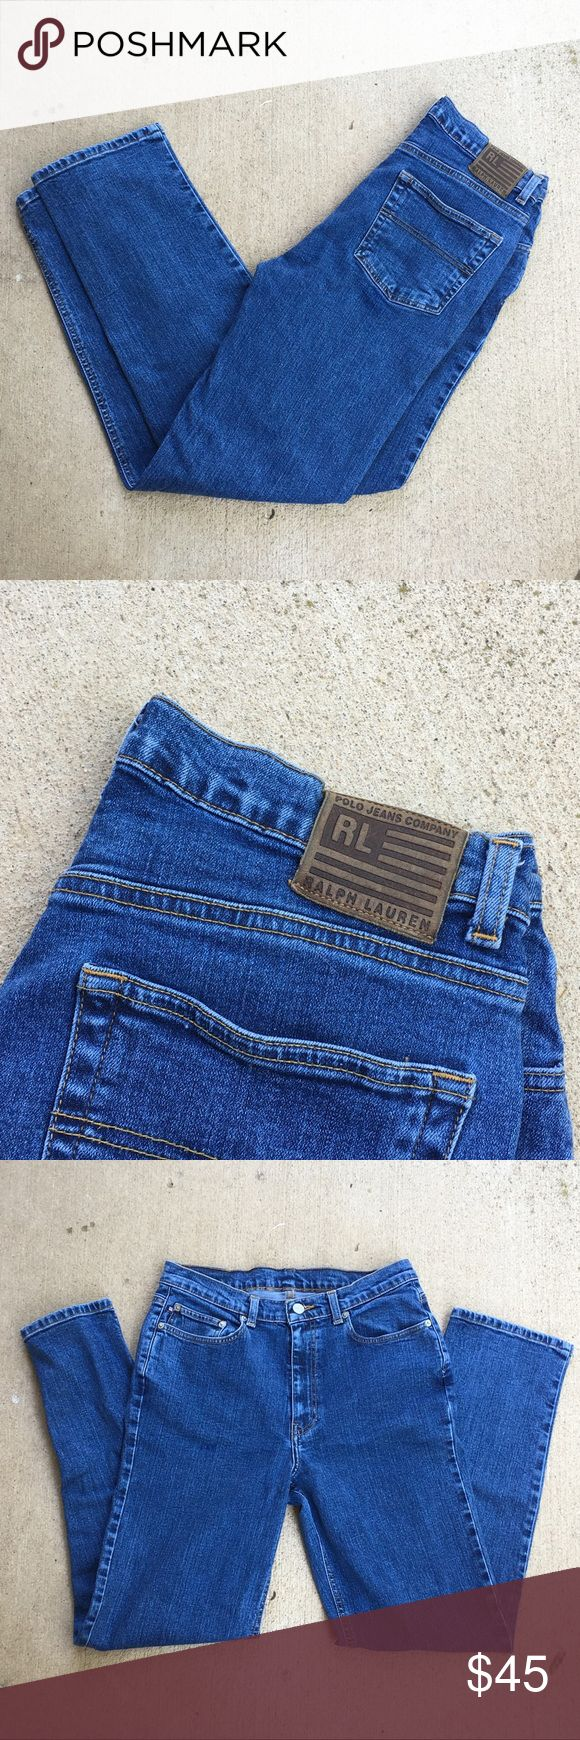 VINTAGE Ralph Lauren Denim Jeans Preowned• no stains or rips• Vintage• medium wash•denim/jean material• High-Waisted• Measurements: Waist- 14 inches, Inseam: 29.5 inches, Outseam- 39 inches, Leg opening- 7.5 inches, Front Rise- 8.5 inches, Back Rise- 13.5 inches, Hips- 18 inches•No try ons Polo by Ralph Lauren Jeans Straight Leg